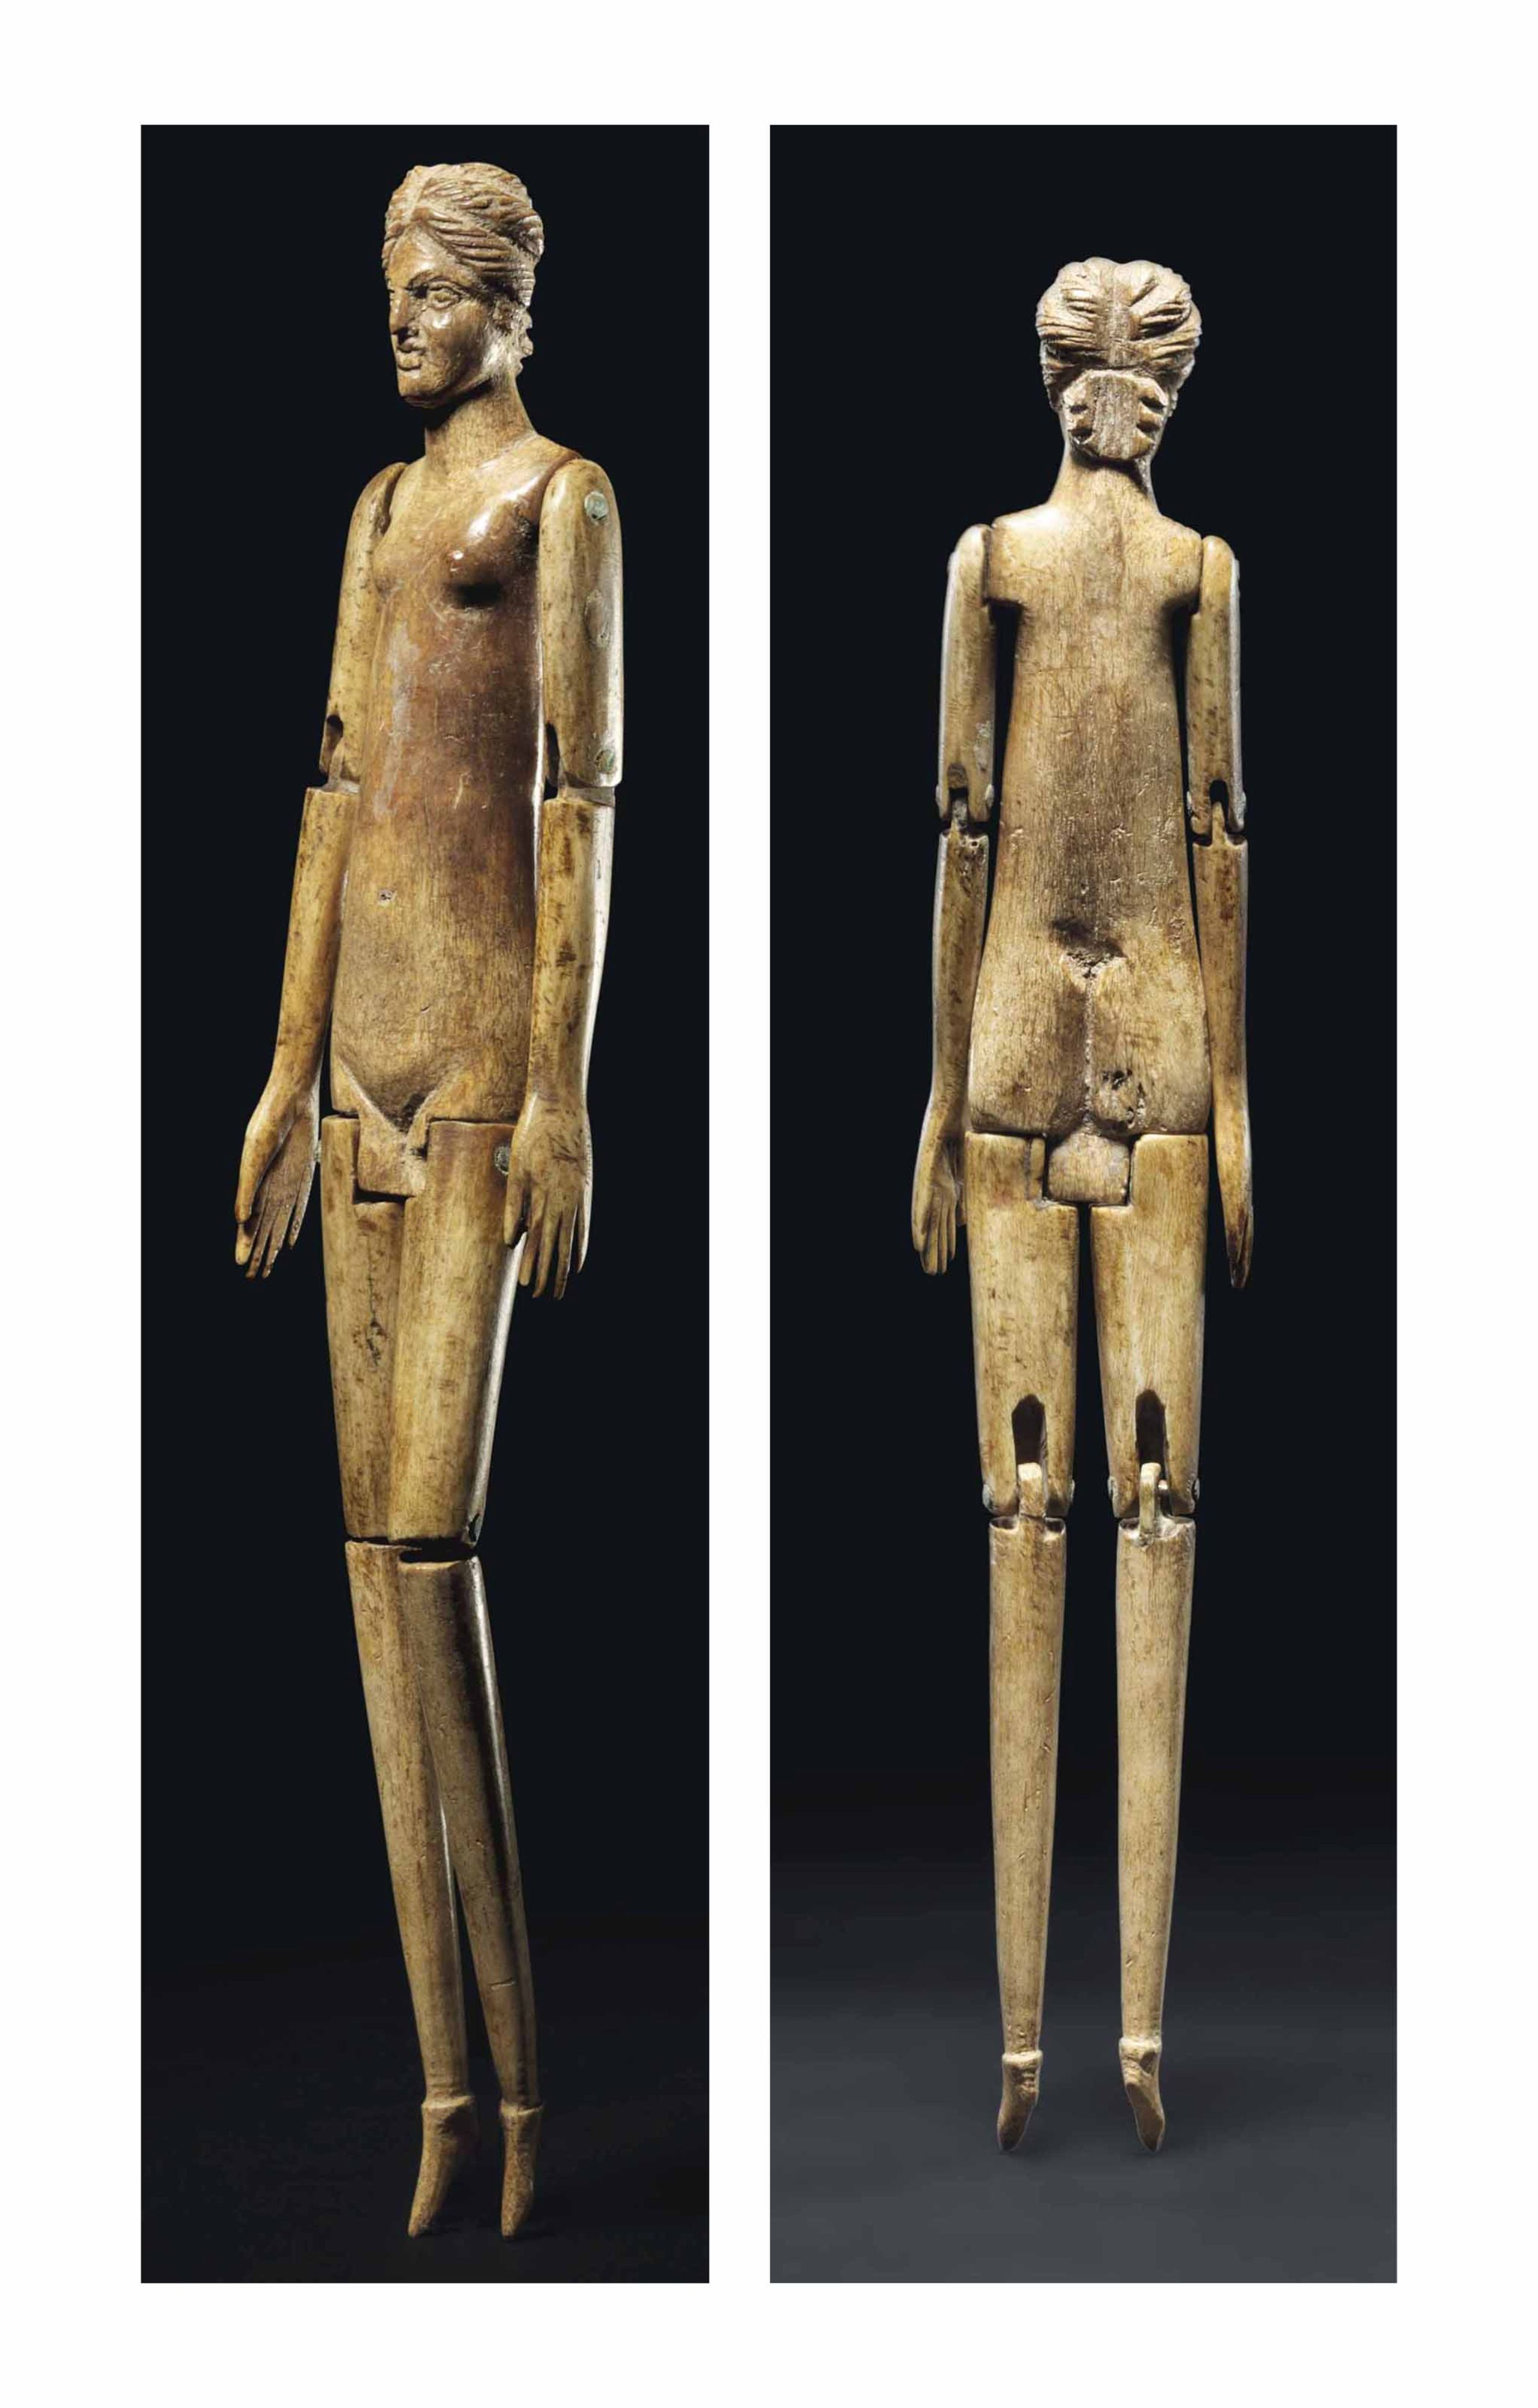 Roman bone articulated doll from the 2nd century #AncientCivilizations #AncientDolls